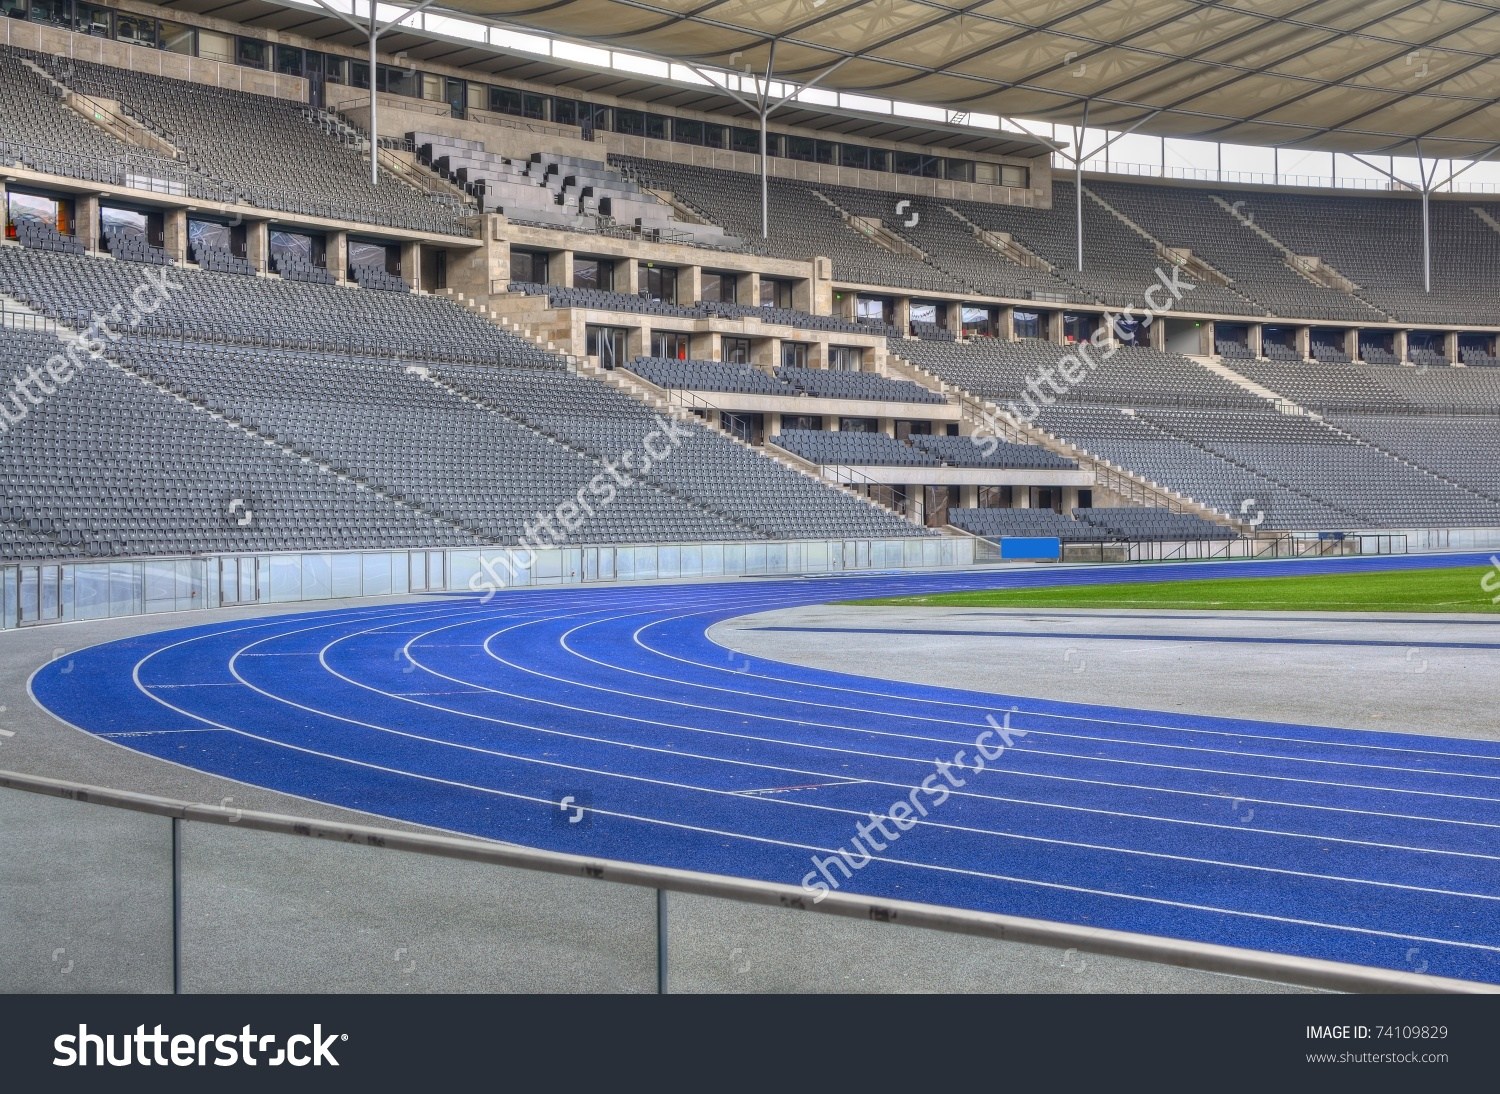 Olympiastadion Olympic Stadium Sports Stadium Berlin Stock Photo.